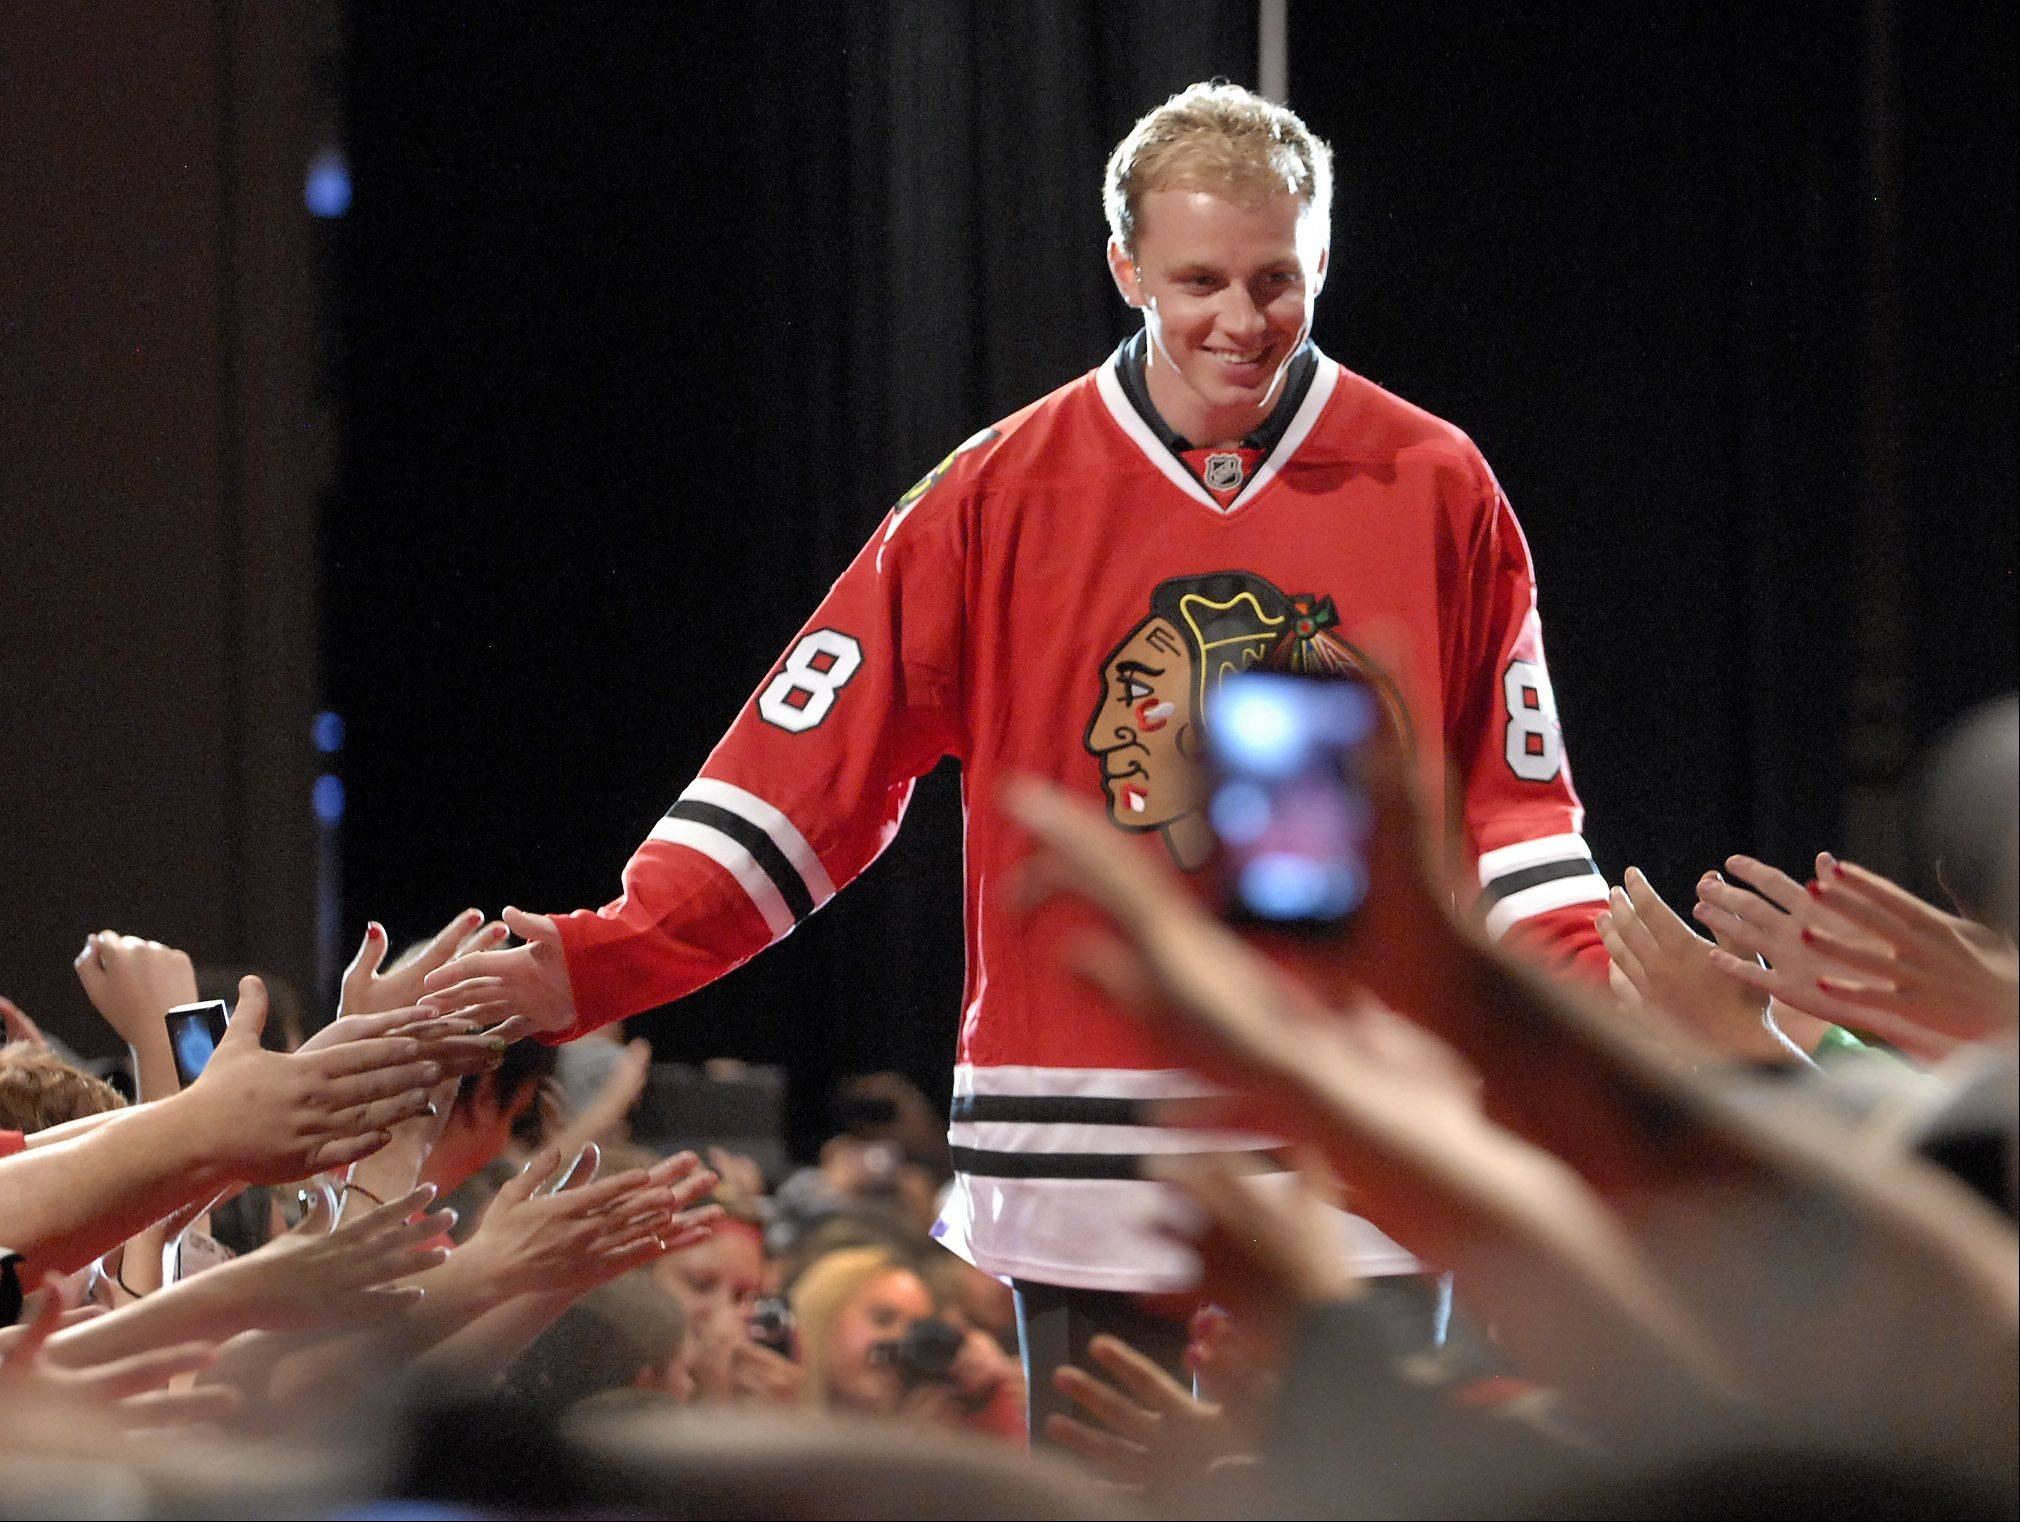 Patrick Kane runs the gauntlet of fans after being introduced at the sixth annual Blackhawks Convention.